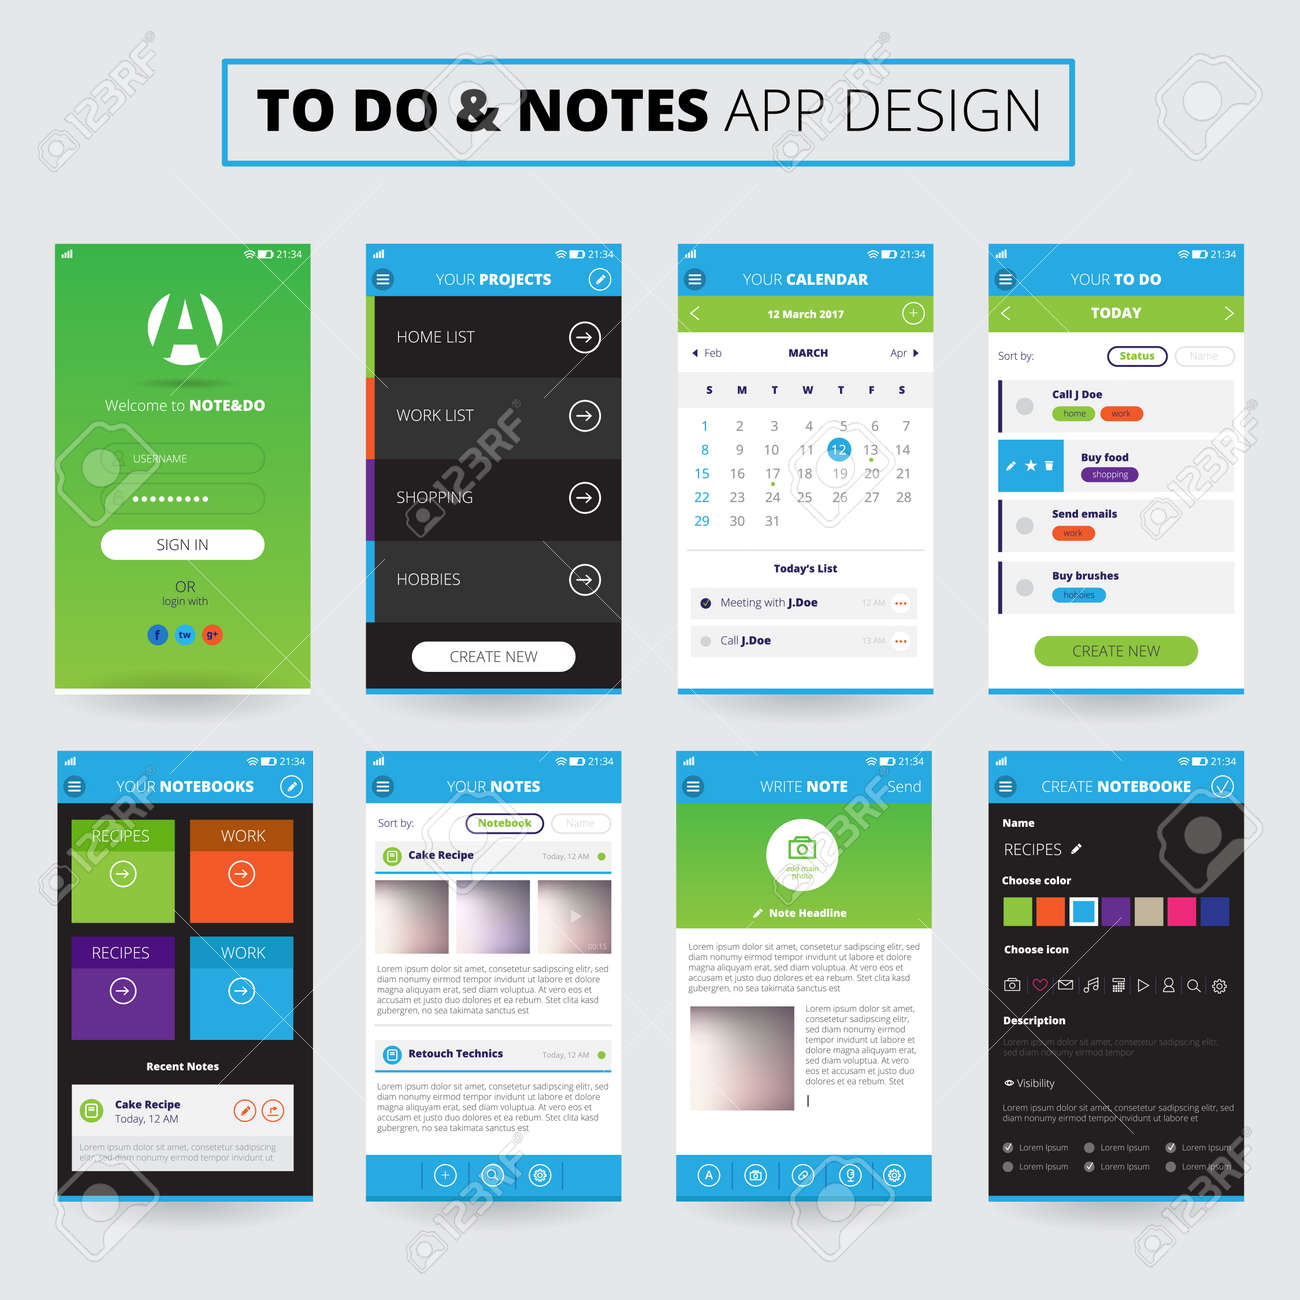 Mobile apps design for notes and projects on smartphone screens with icons and settings isolated vector illustration - 165189296